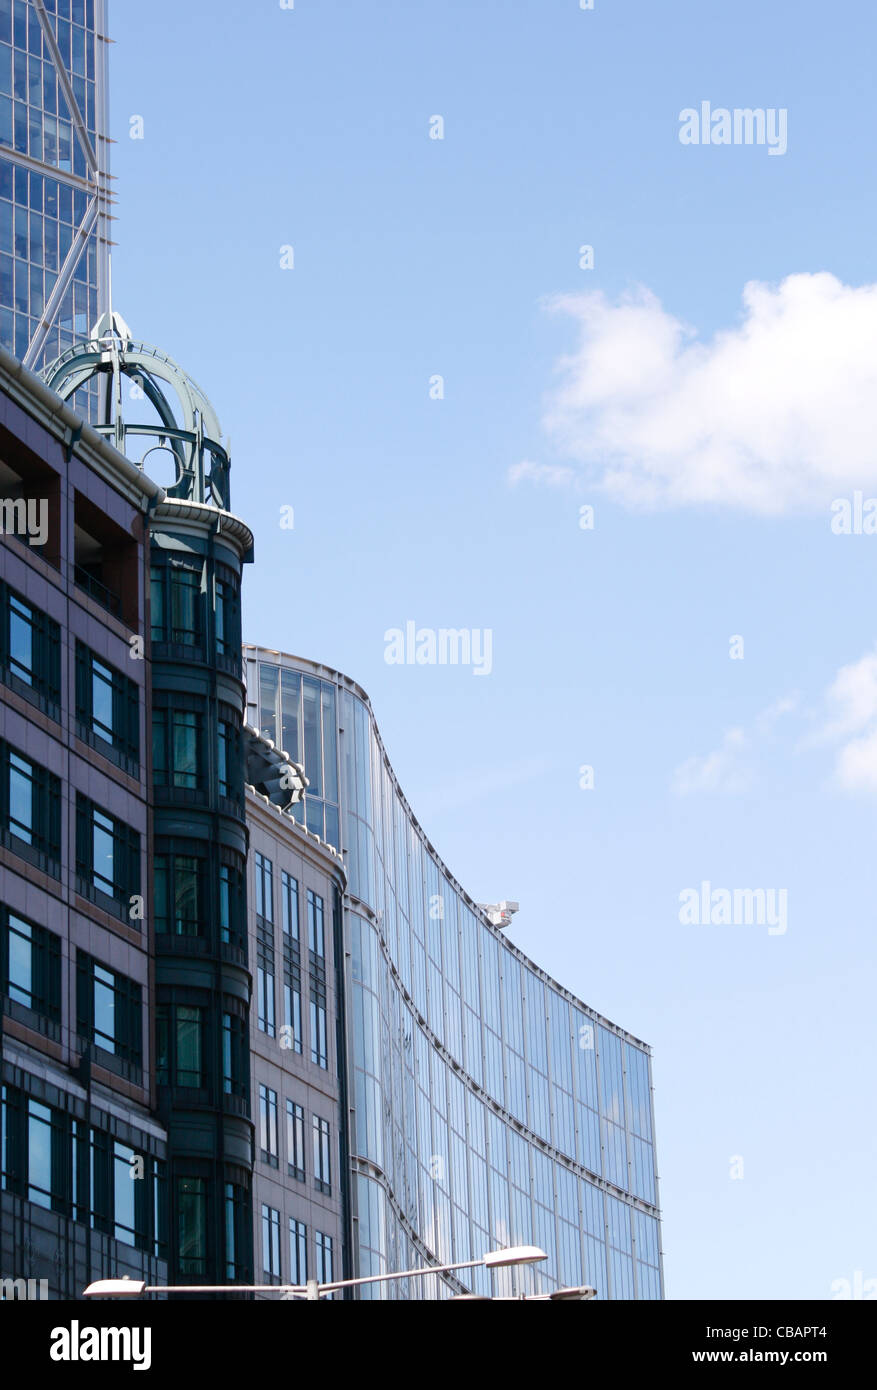 Tall City Buildings in London UK Stock Photo Royalty Free Image